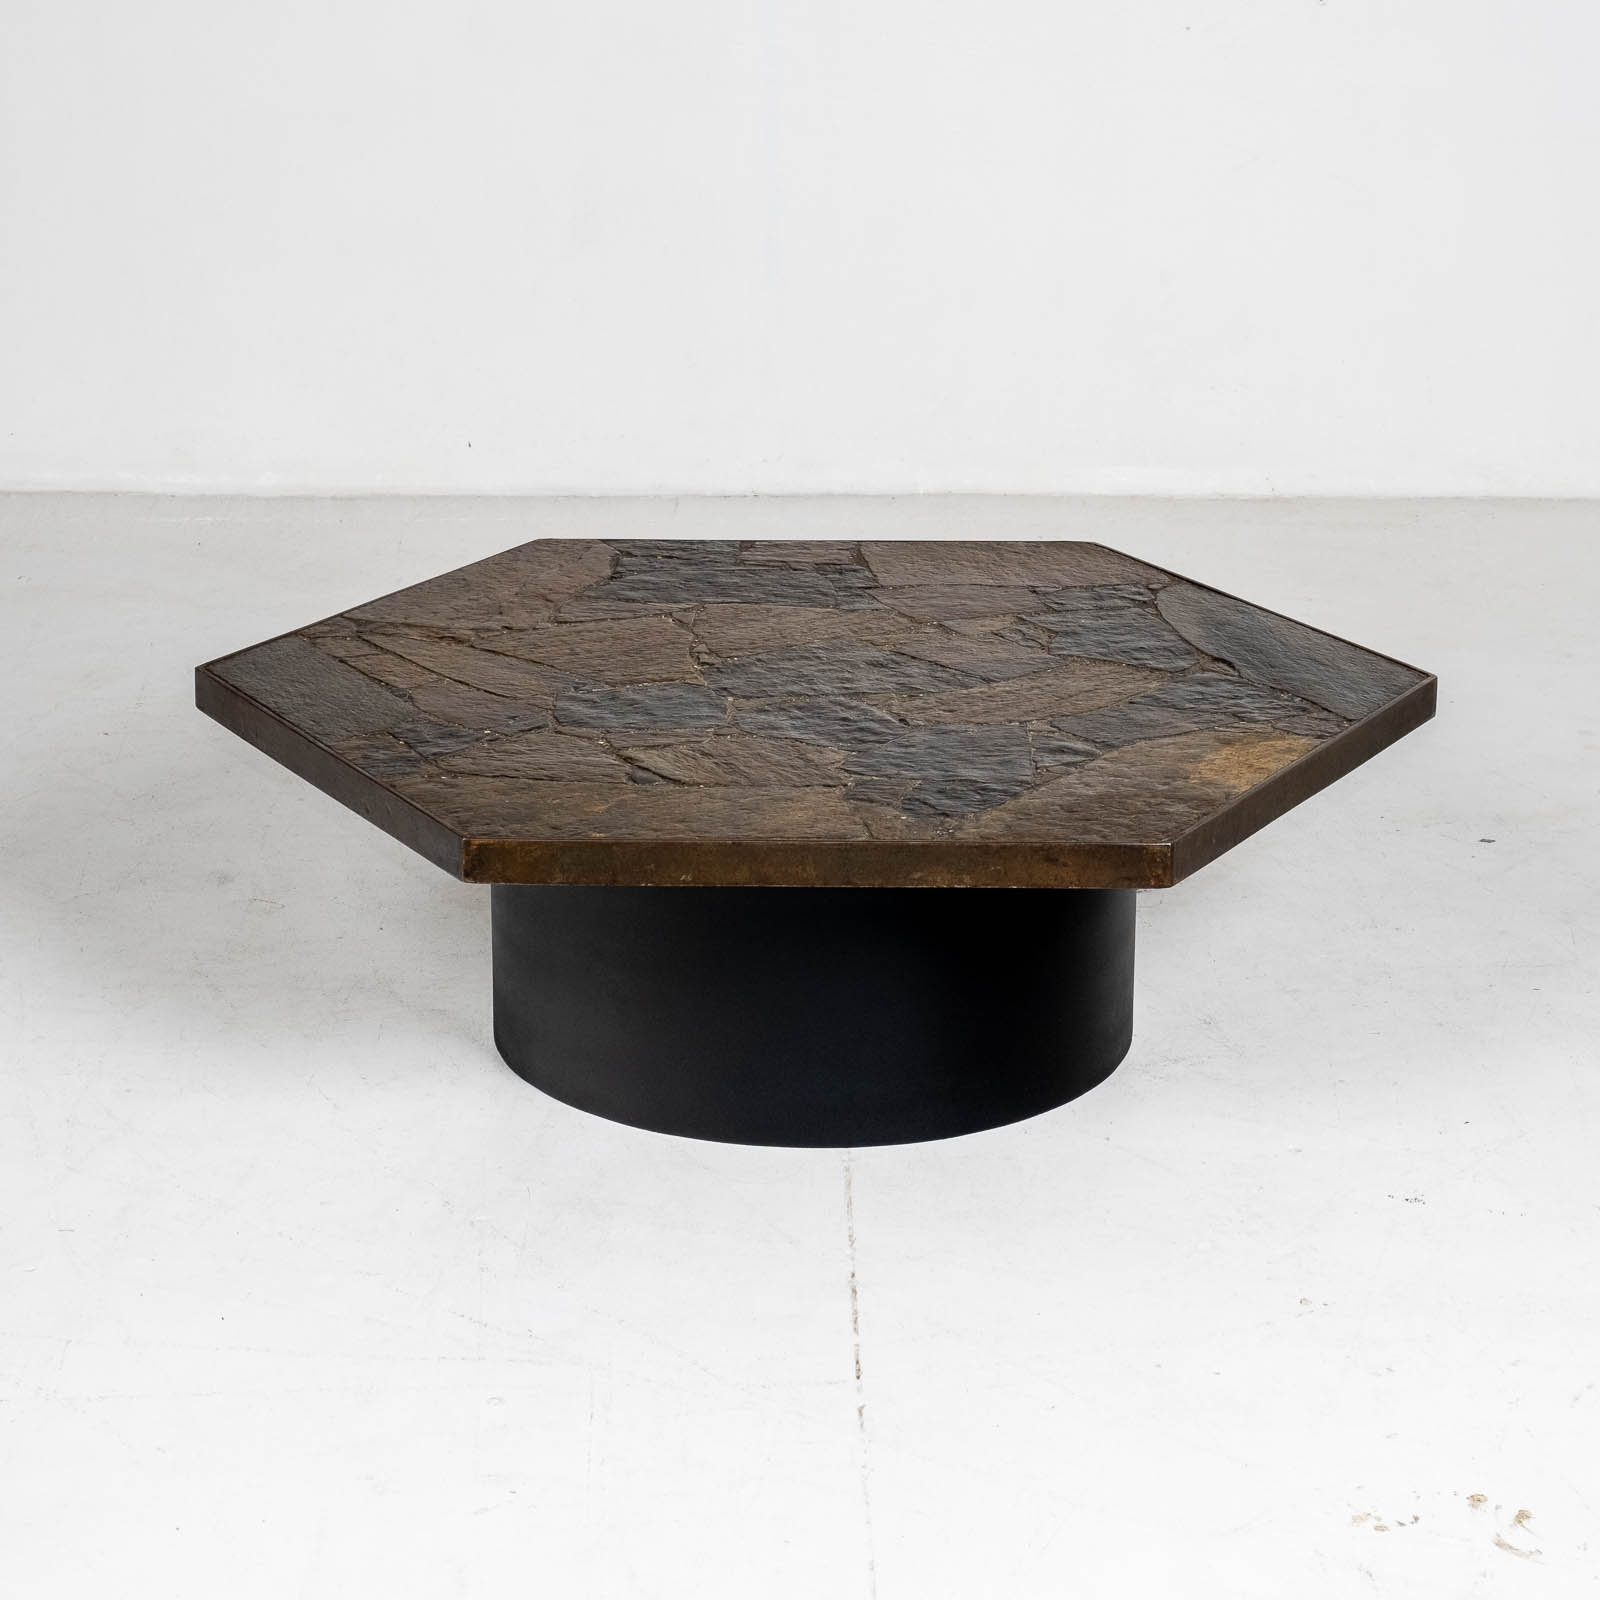 Hexagonal Coffee Table In The Style Of Paul Kingma With Stone Top And Metal Edge, 1970s, The Netherlands 00004